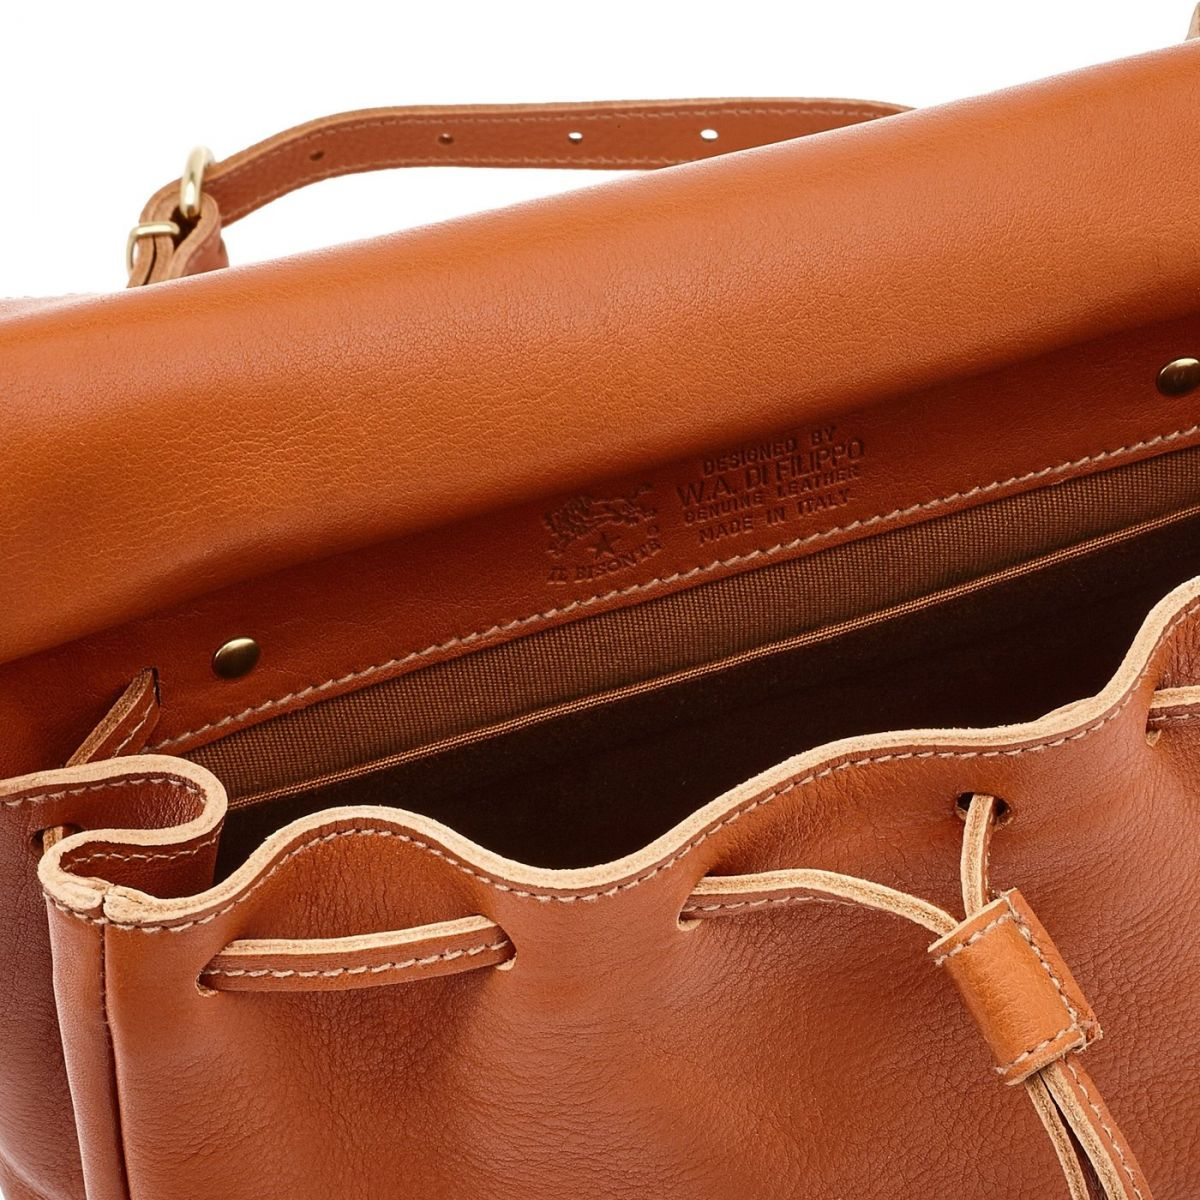 Women's Crossbody Bag Tornabuoni in Cowhide Double Leather BCR086 color Caramel | Details